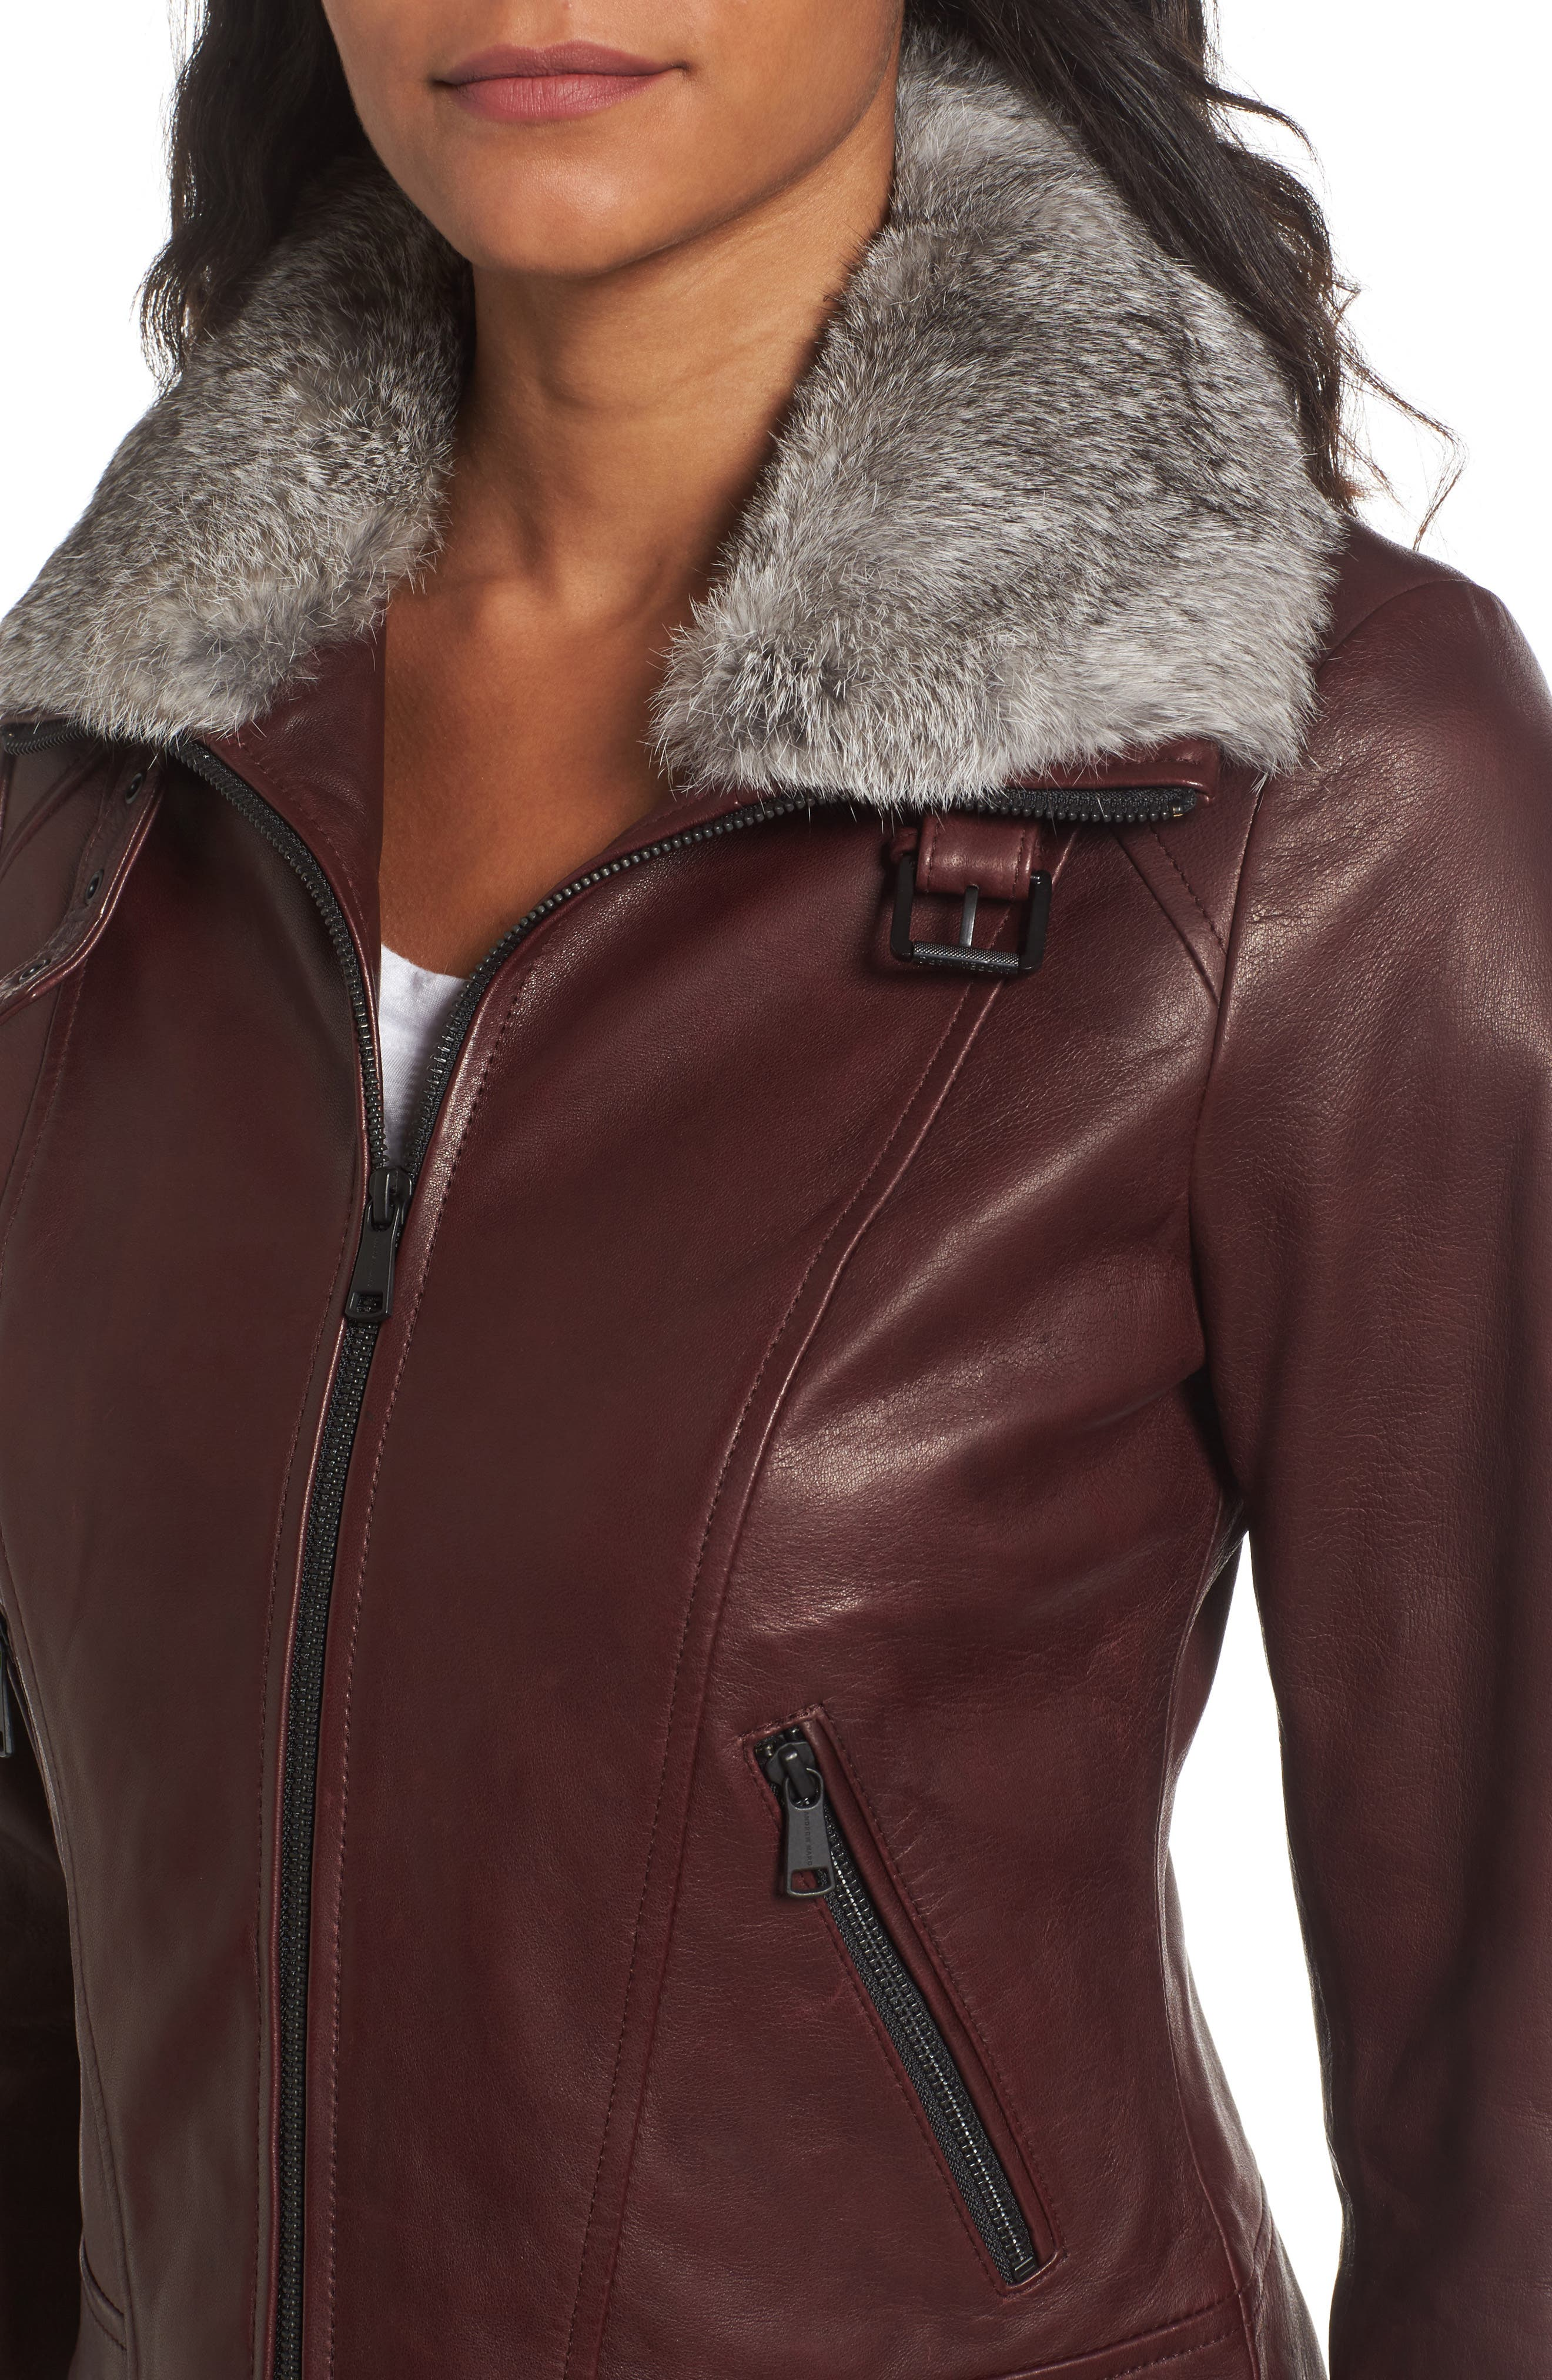 Cambridge Genuine Rabbit Fur & Leather Jacket,                             Alternate thumbnail 4, color,                             Burgundy